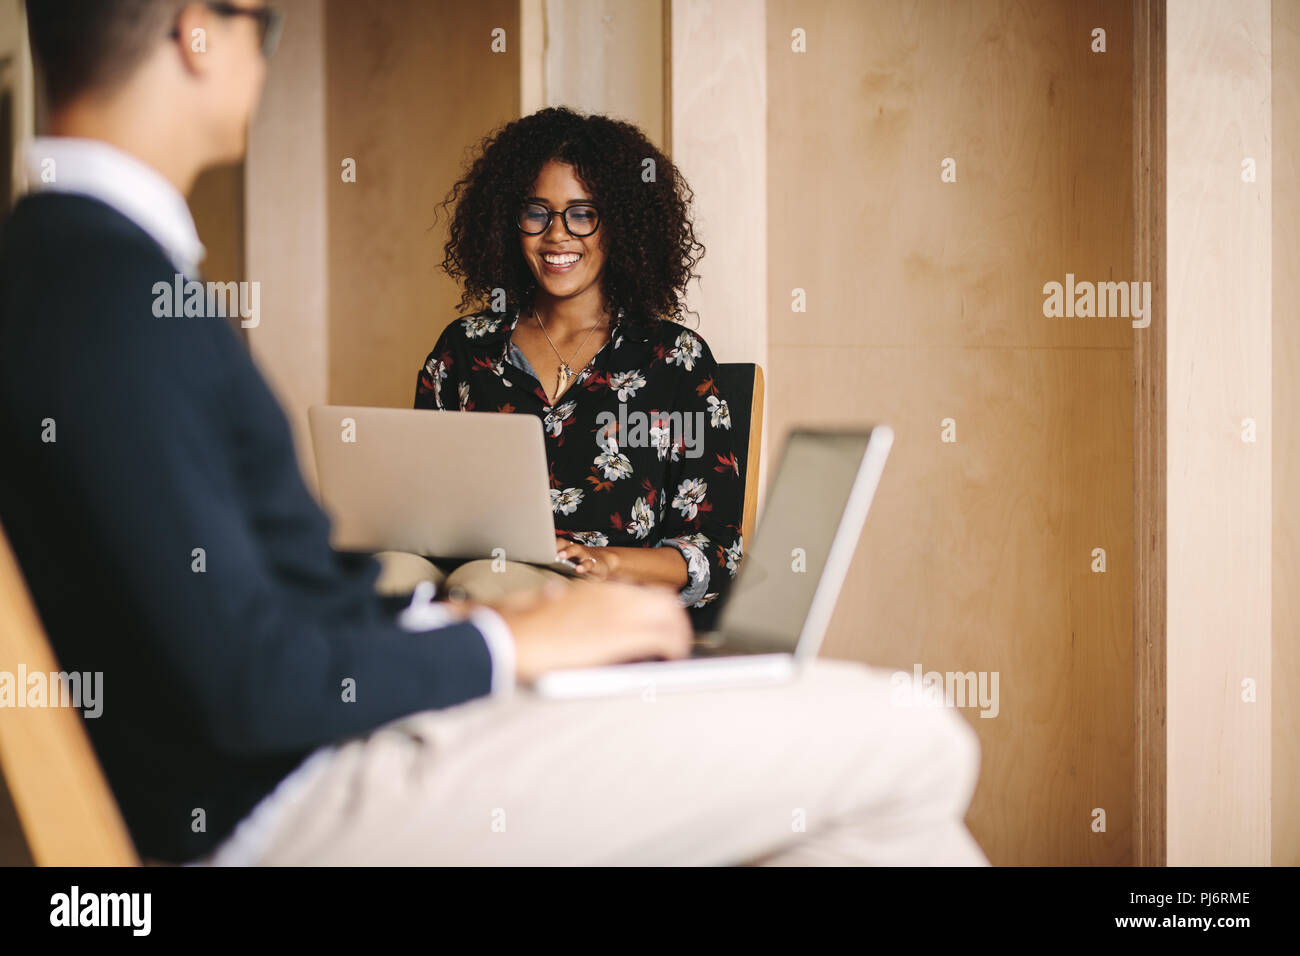 Smiling woman entrepreneur working on laptop sitting on chair with a businessman sitting in front. Office colleagues working on laptops sitting on cha Stock Photo